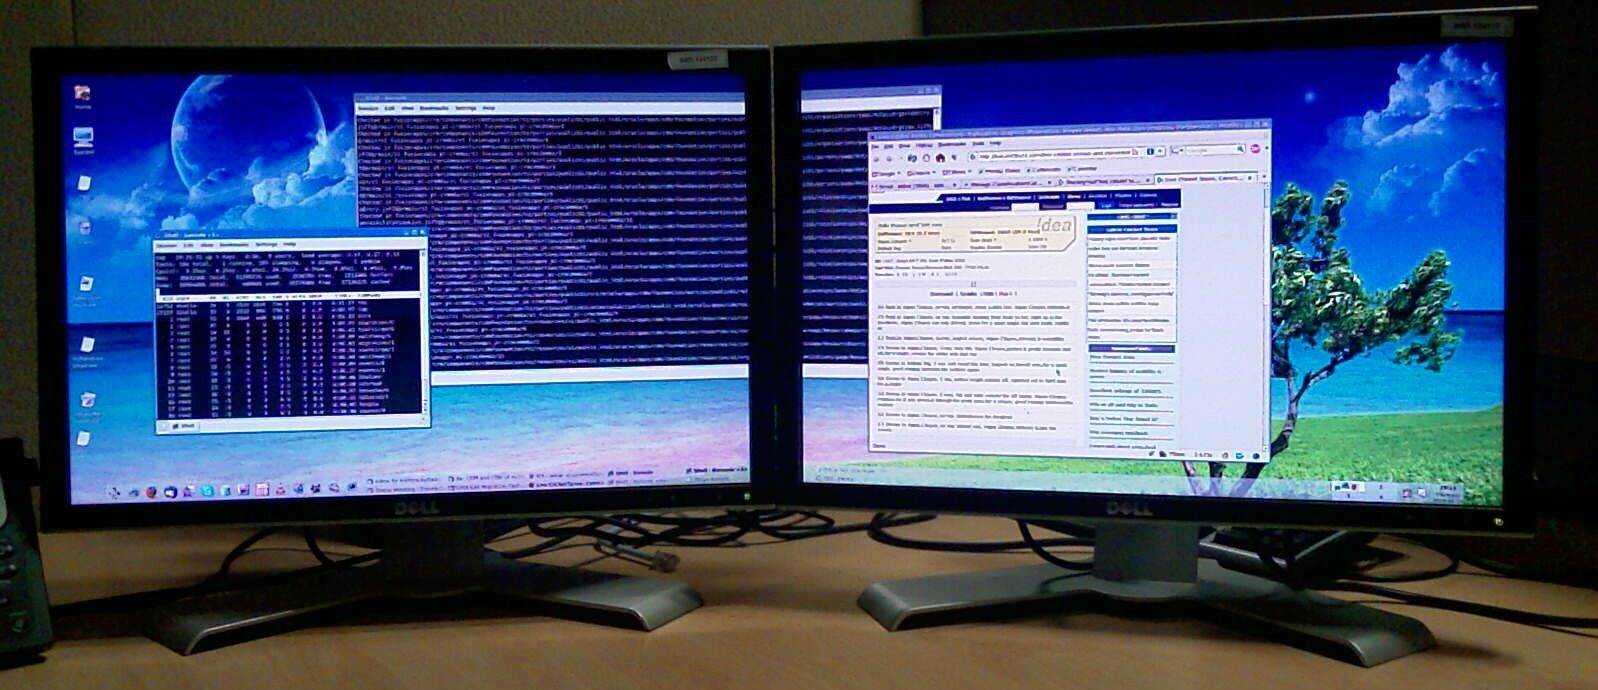 How To Set Different Wallpapers On A Dual Monitor Setup Windows 10 1598x690